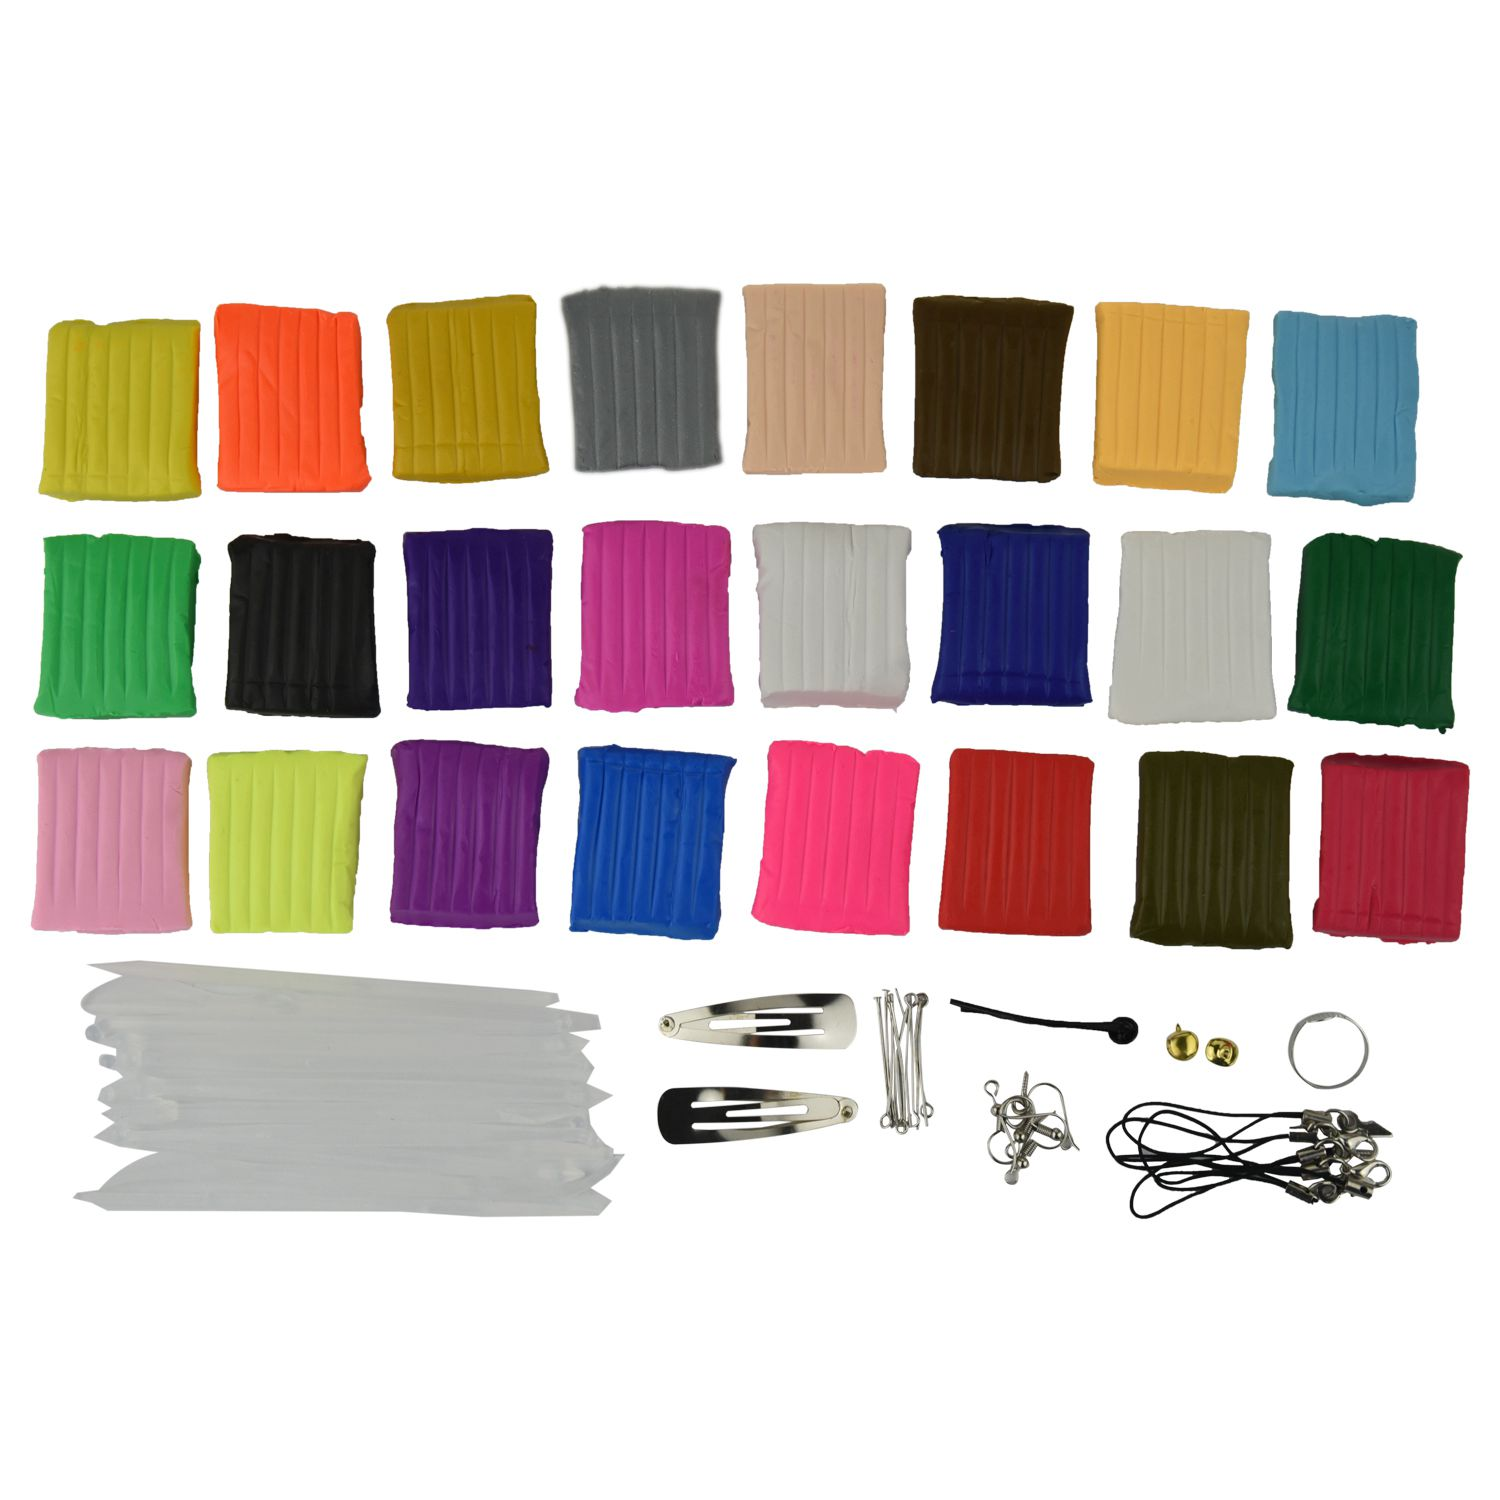 HOT SALE 24 colors + Pate polymer modeling tools + accessories